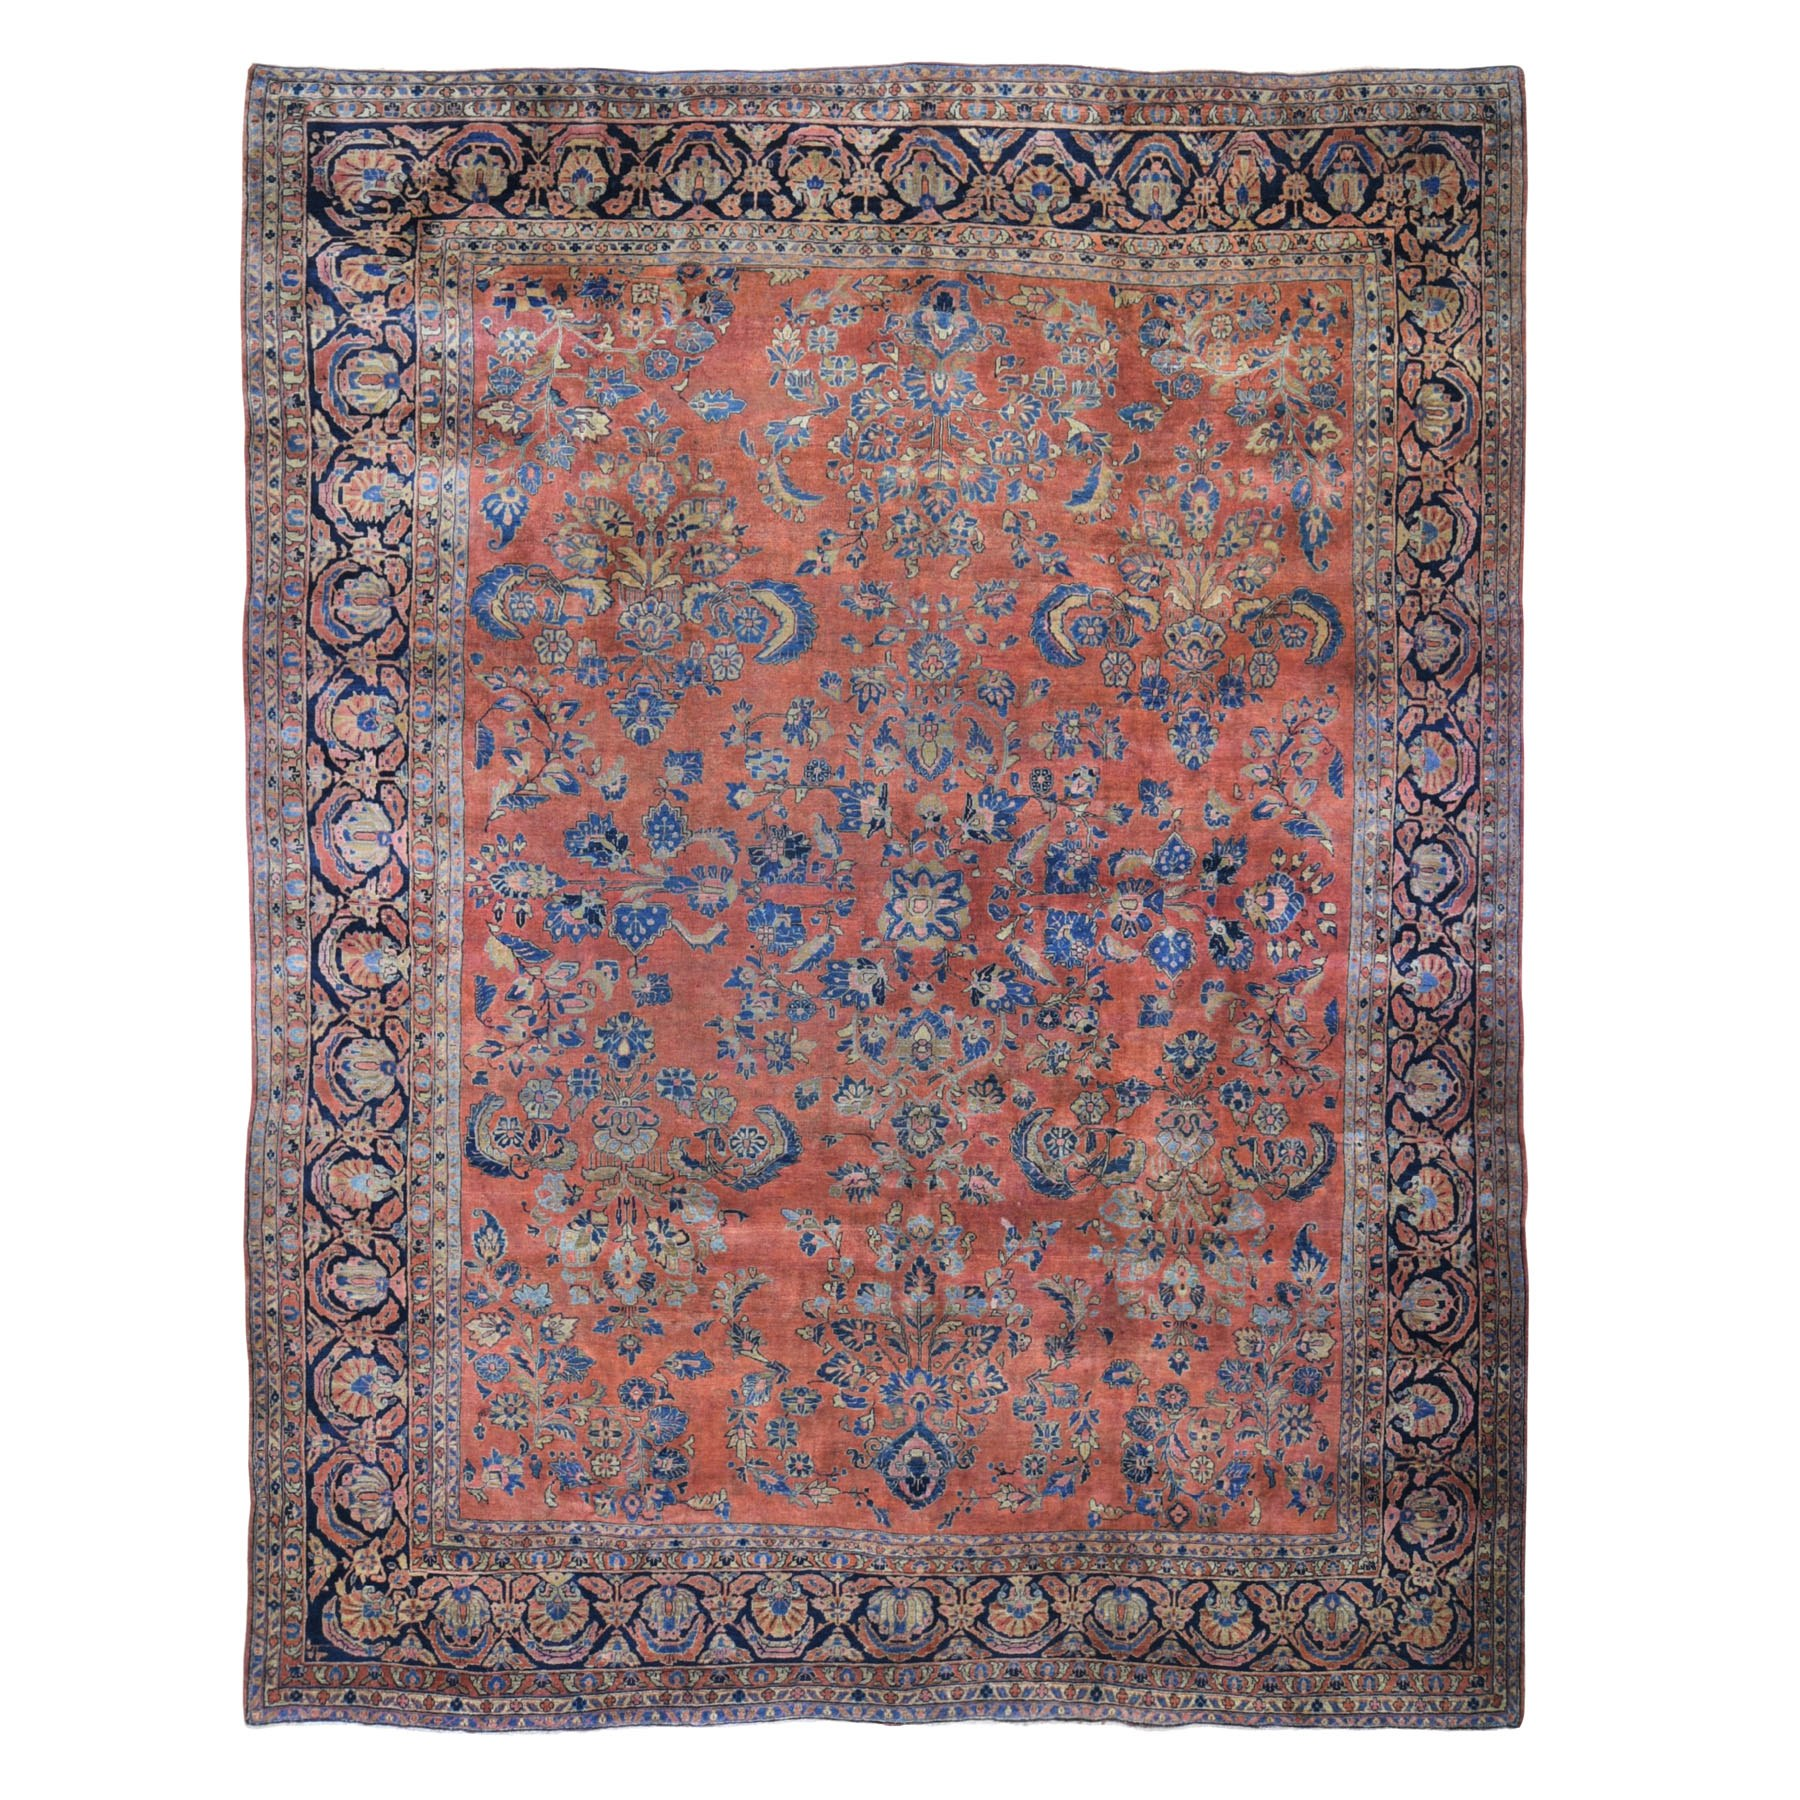 "10'6""X13'  Red Antique Persian Sarouk Even Wear Clean And Soft Hand Knotted Oriental Rug moad9c00"